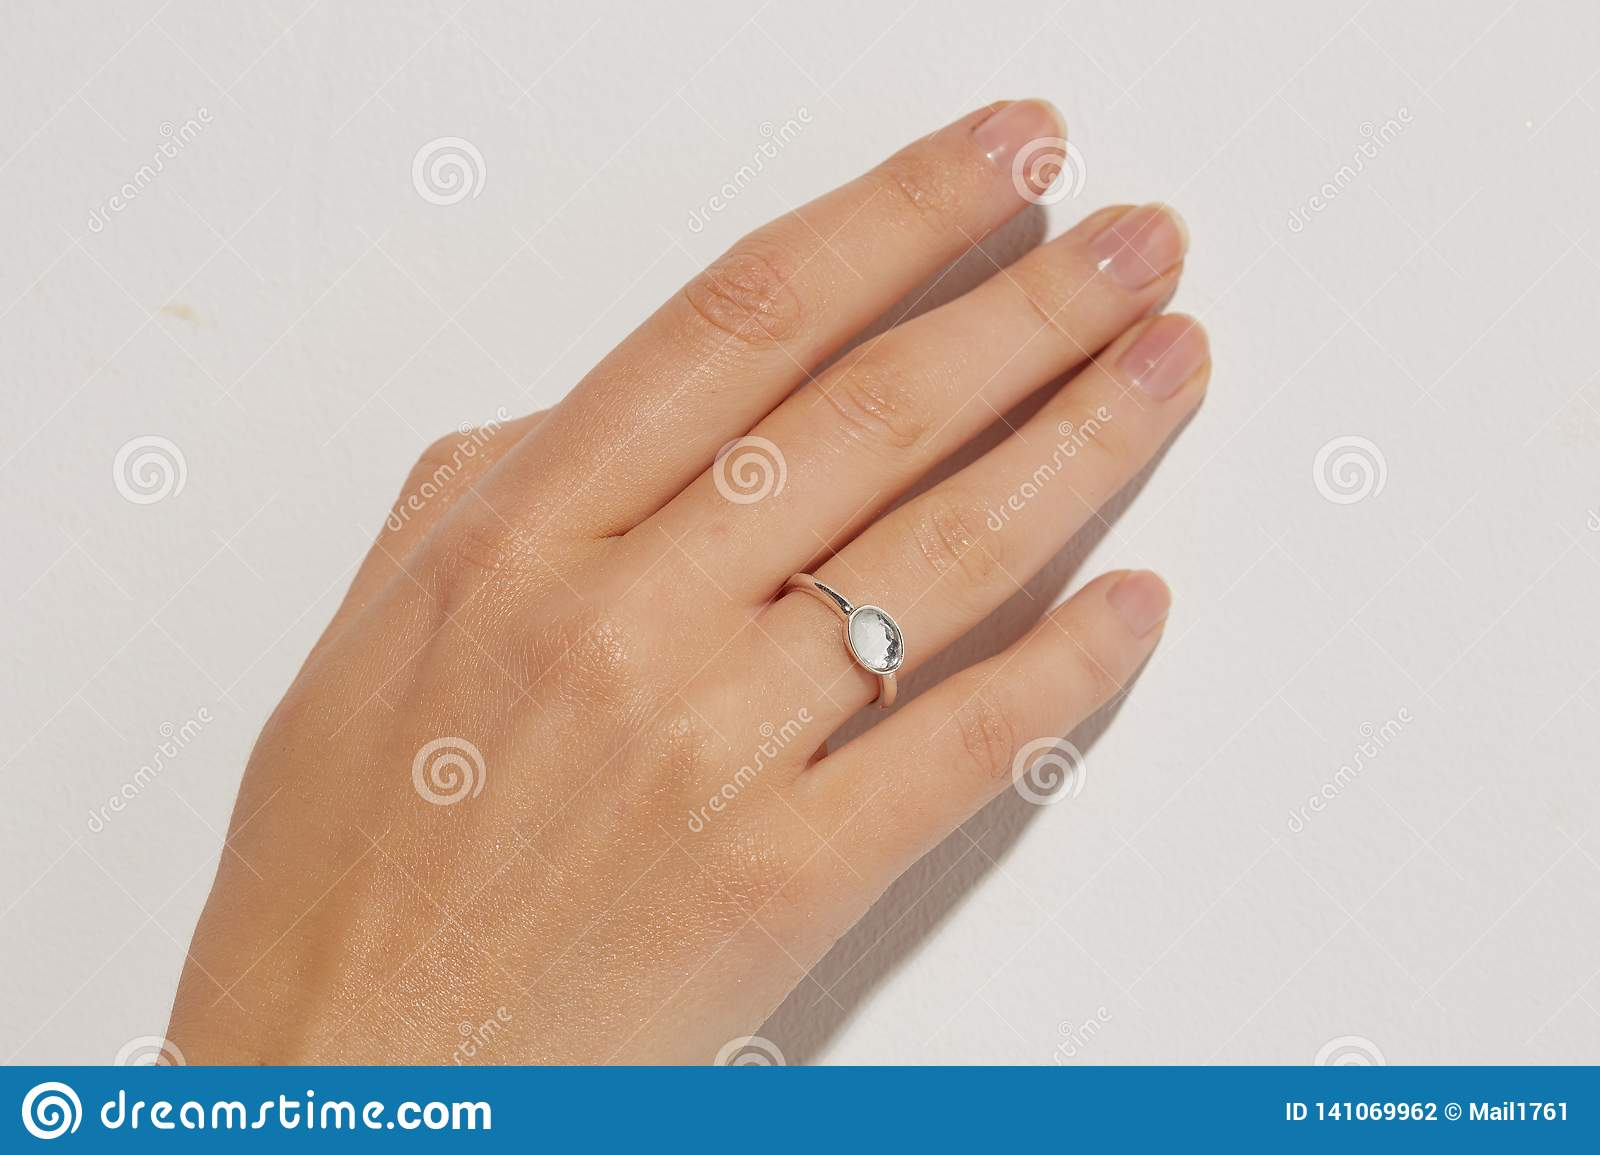 Female hand with a rings.